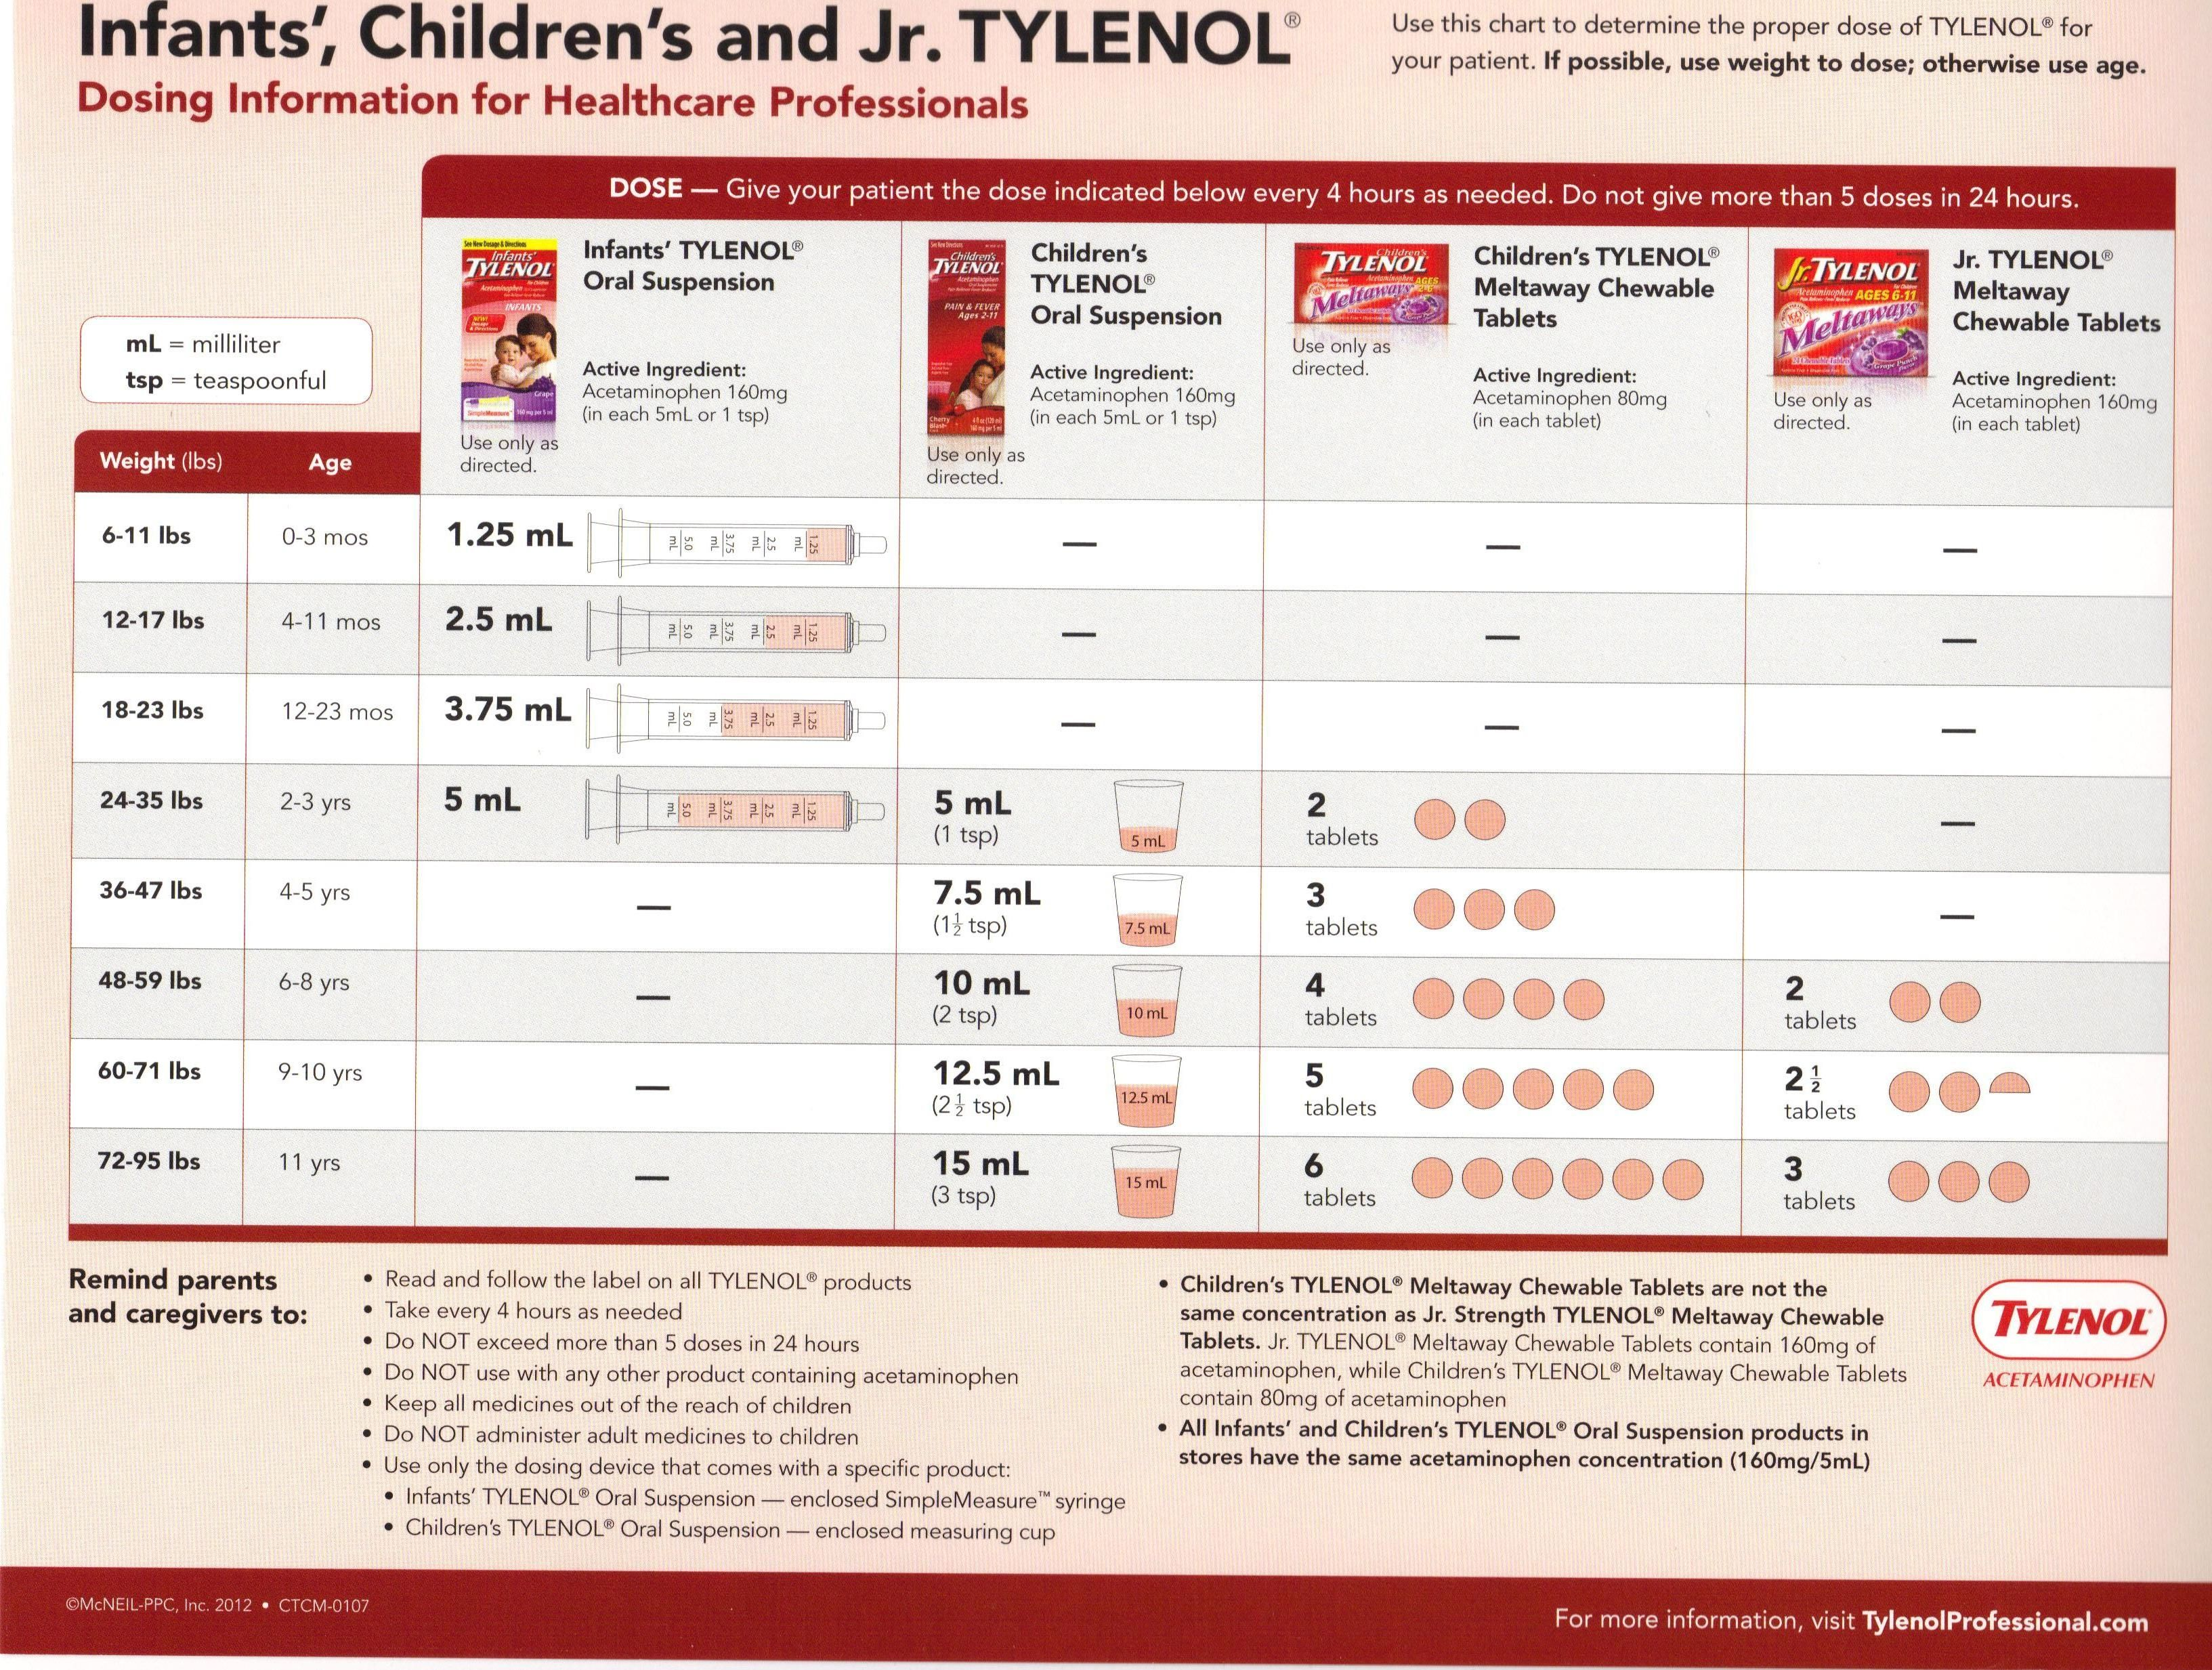 infant tylenol dosing chart | use this chart to determine the proper